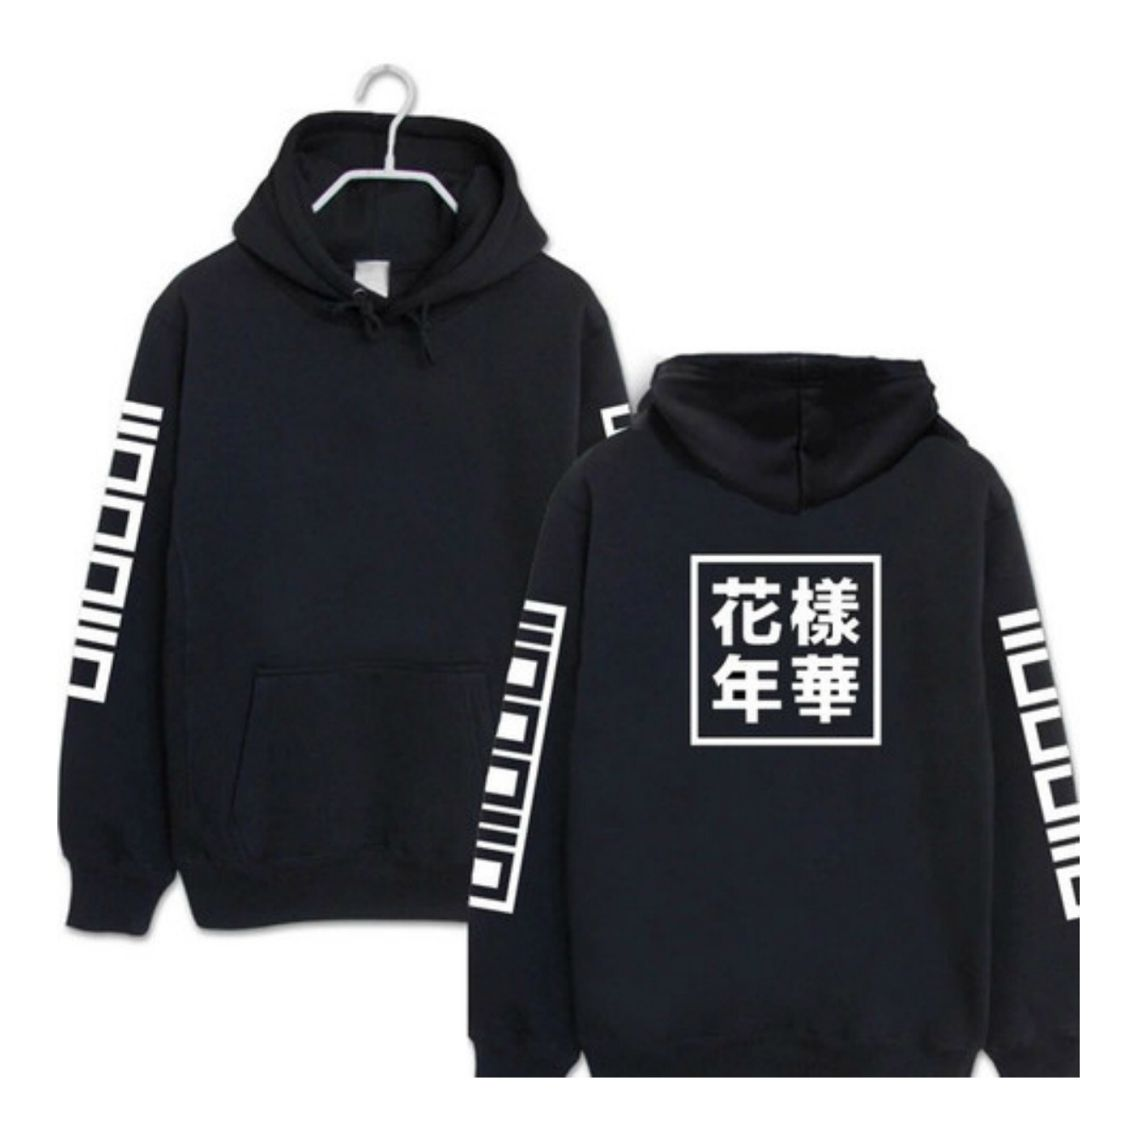 Buy Cheap 2019 New Brand Logo Print Hoodie Streetwear Hip Hop Red Black Gray Pink Hooded Hoody Mens Hoodies And Sweatshirts Size M-xxl Back To Search Resultsmen's Clothing